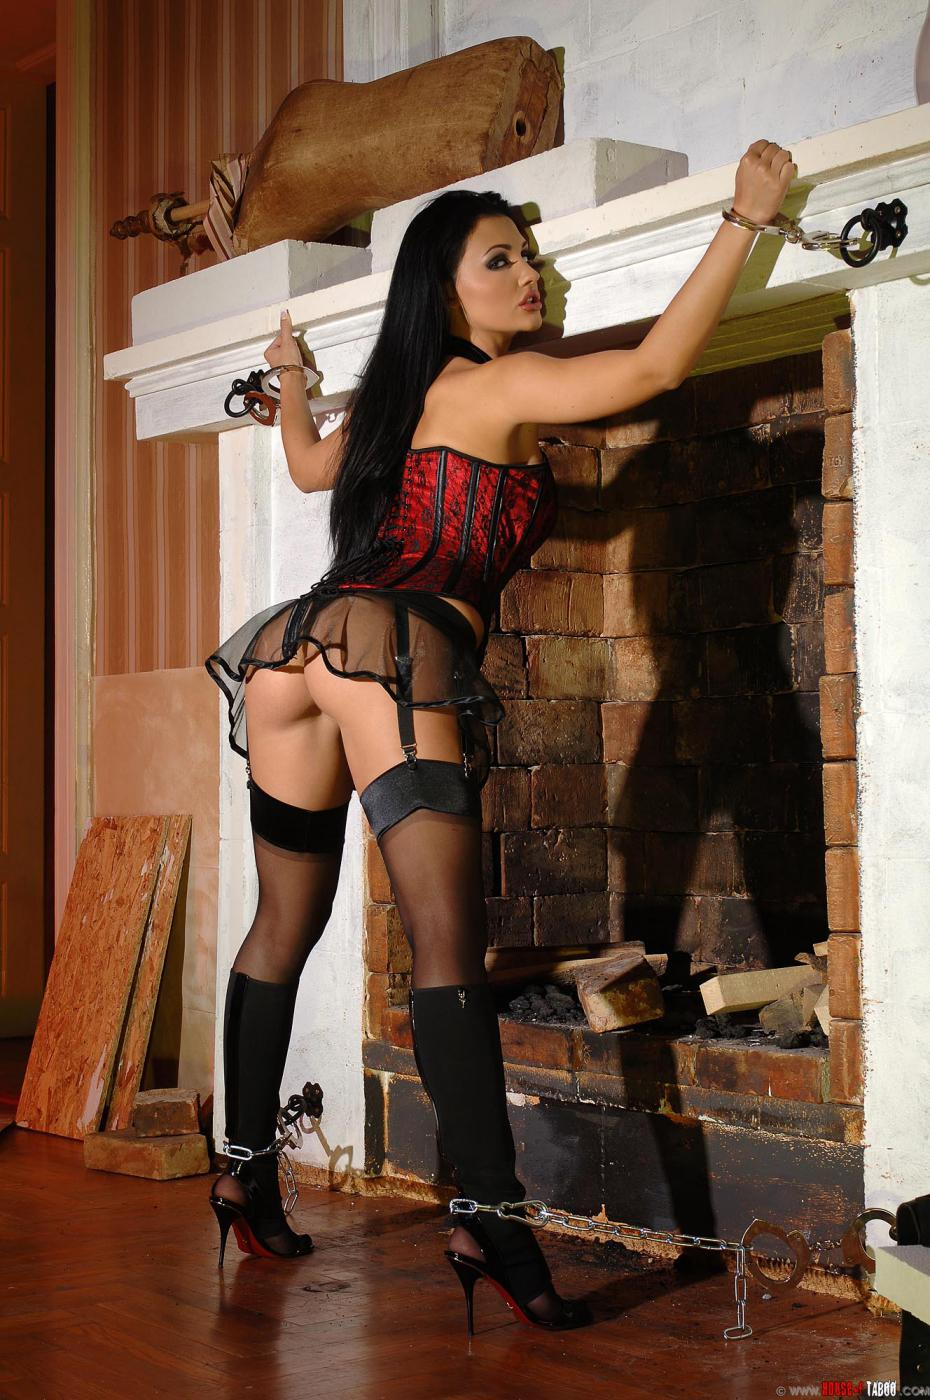 Can suggest Aletta ocean bondage sex